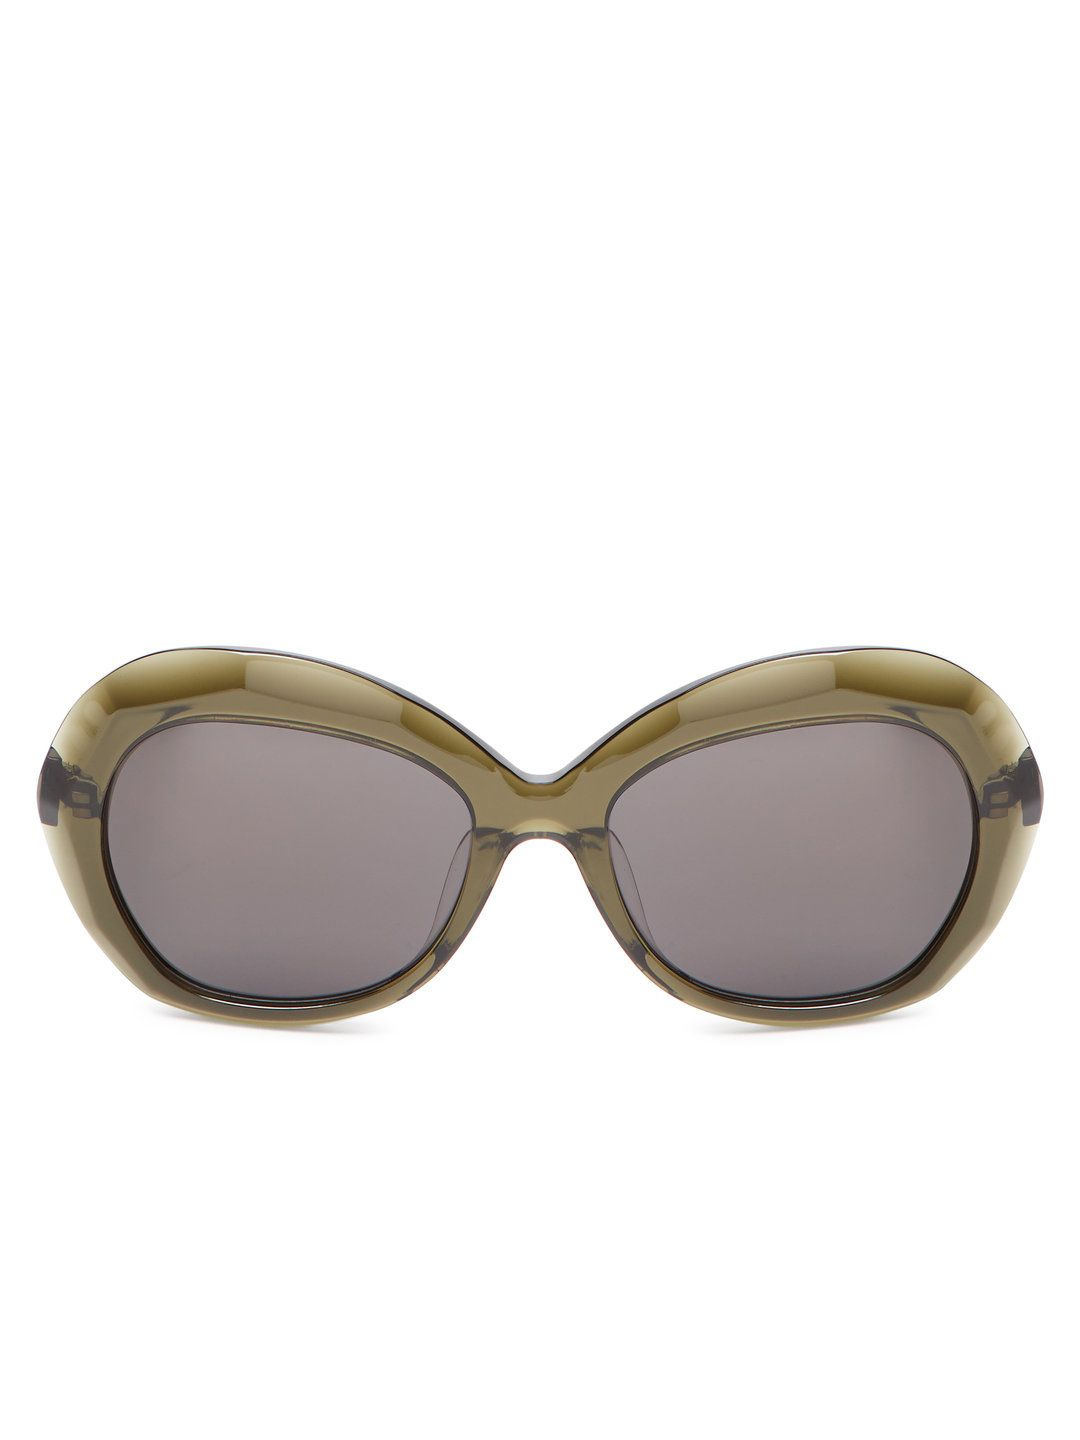 1dff8124aaf 85 Acetate Butterfly Frame by Linda Farrow Luxe at Gilt ...